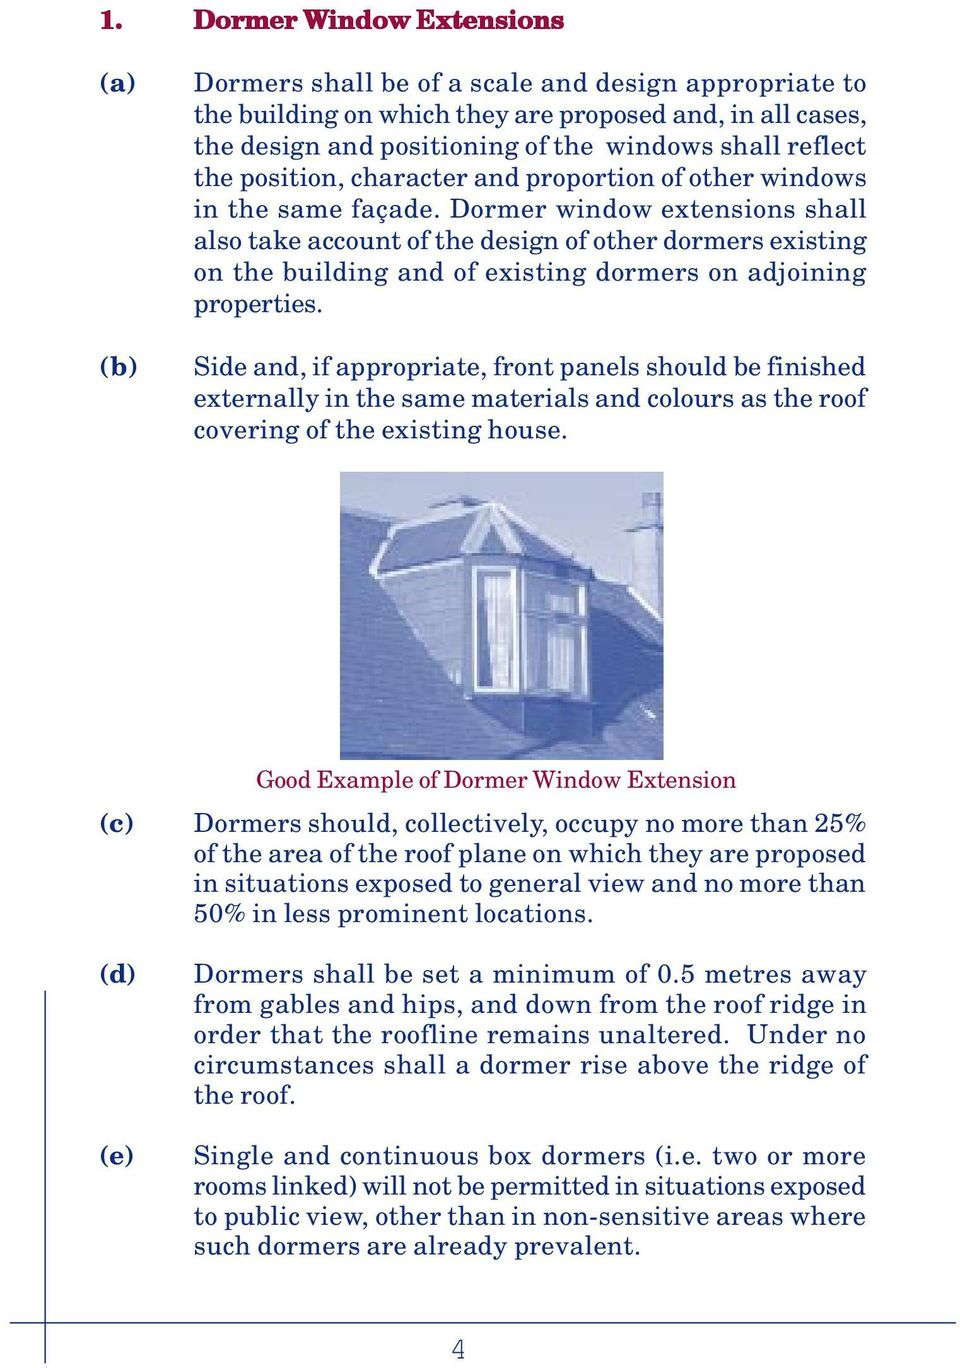 Dormer window extensions shall also take account of the design of other dormers existing on the building and of existing dormers on adjoining properties.